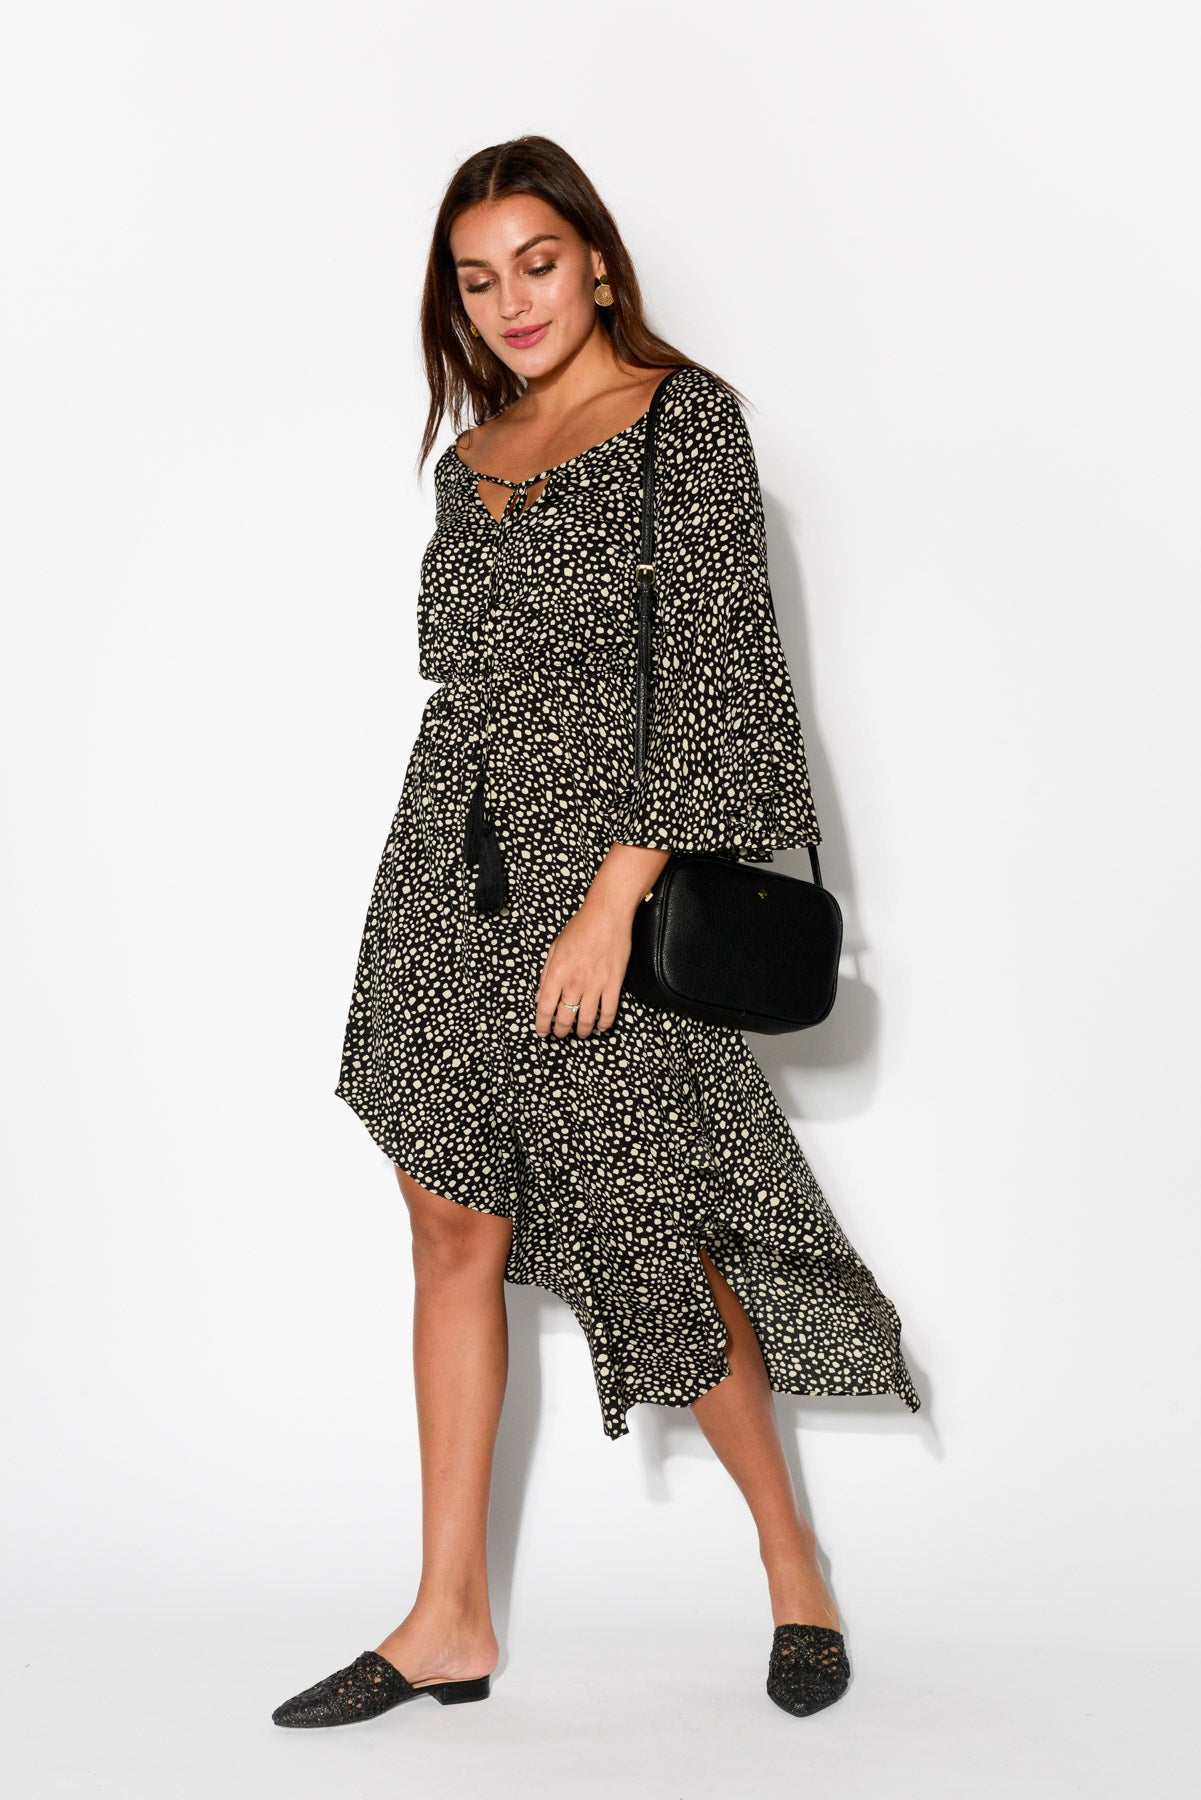 Grace Black Cheetah Dress - Blue Bungalow